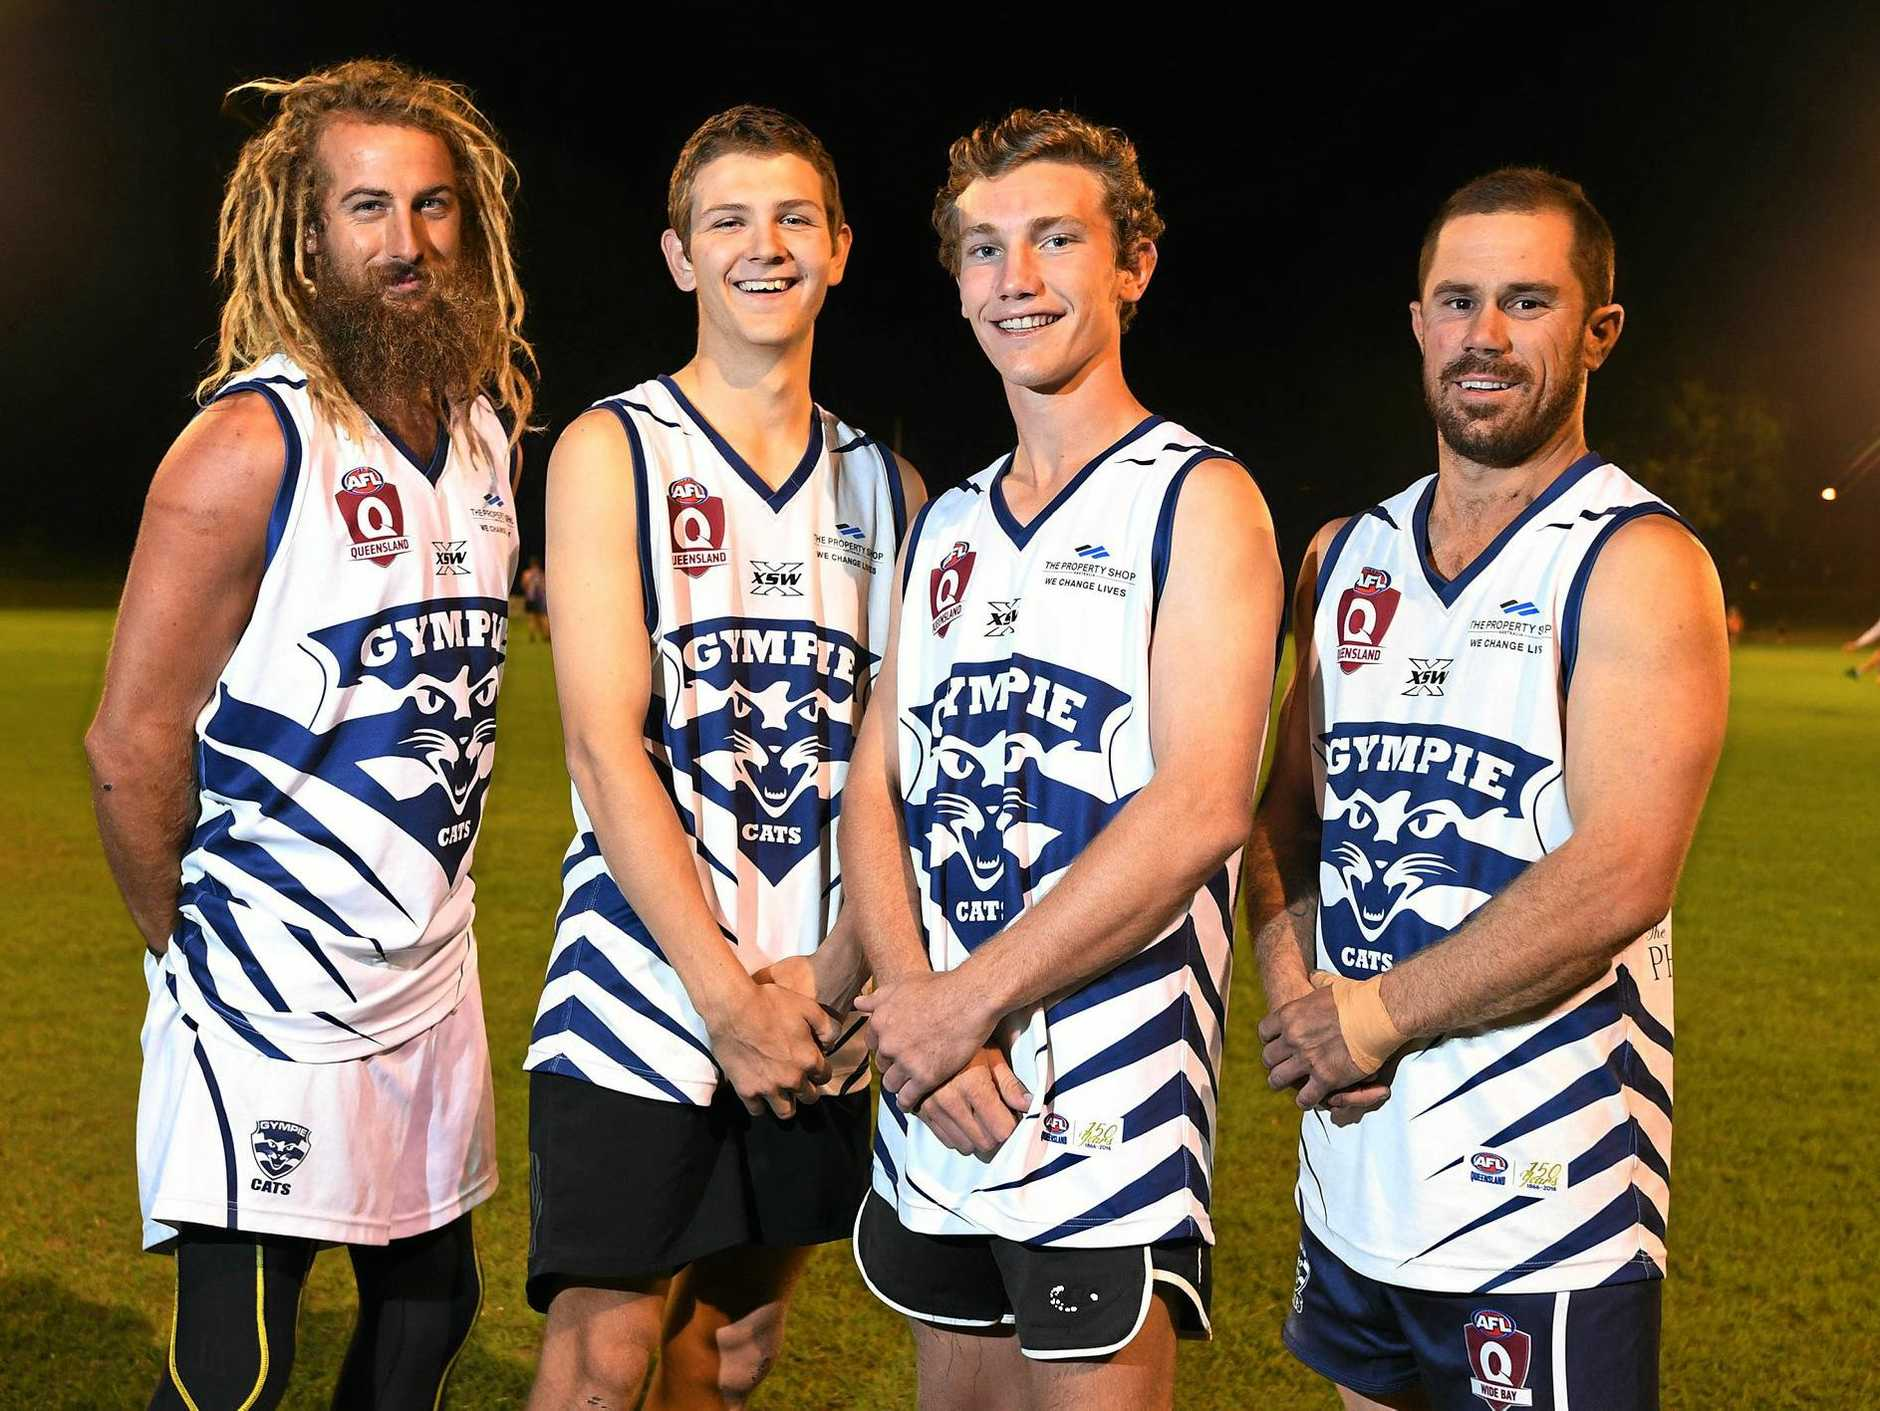 LONG-AWAITED RETURN: Lanze Magin, Kade Kent, and Scott Stiefler (far right) could all return to support Gympie Cats co-captain Jack Cross (second from right) this weekend.